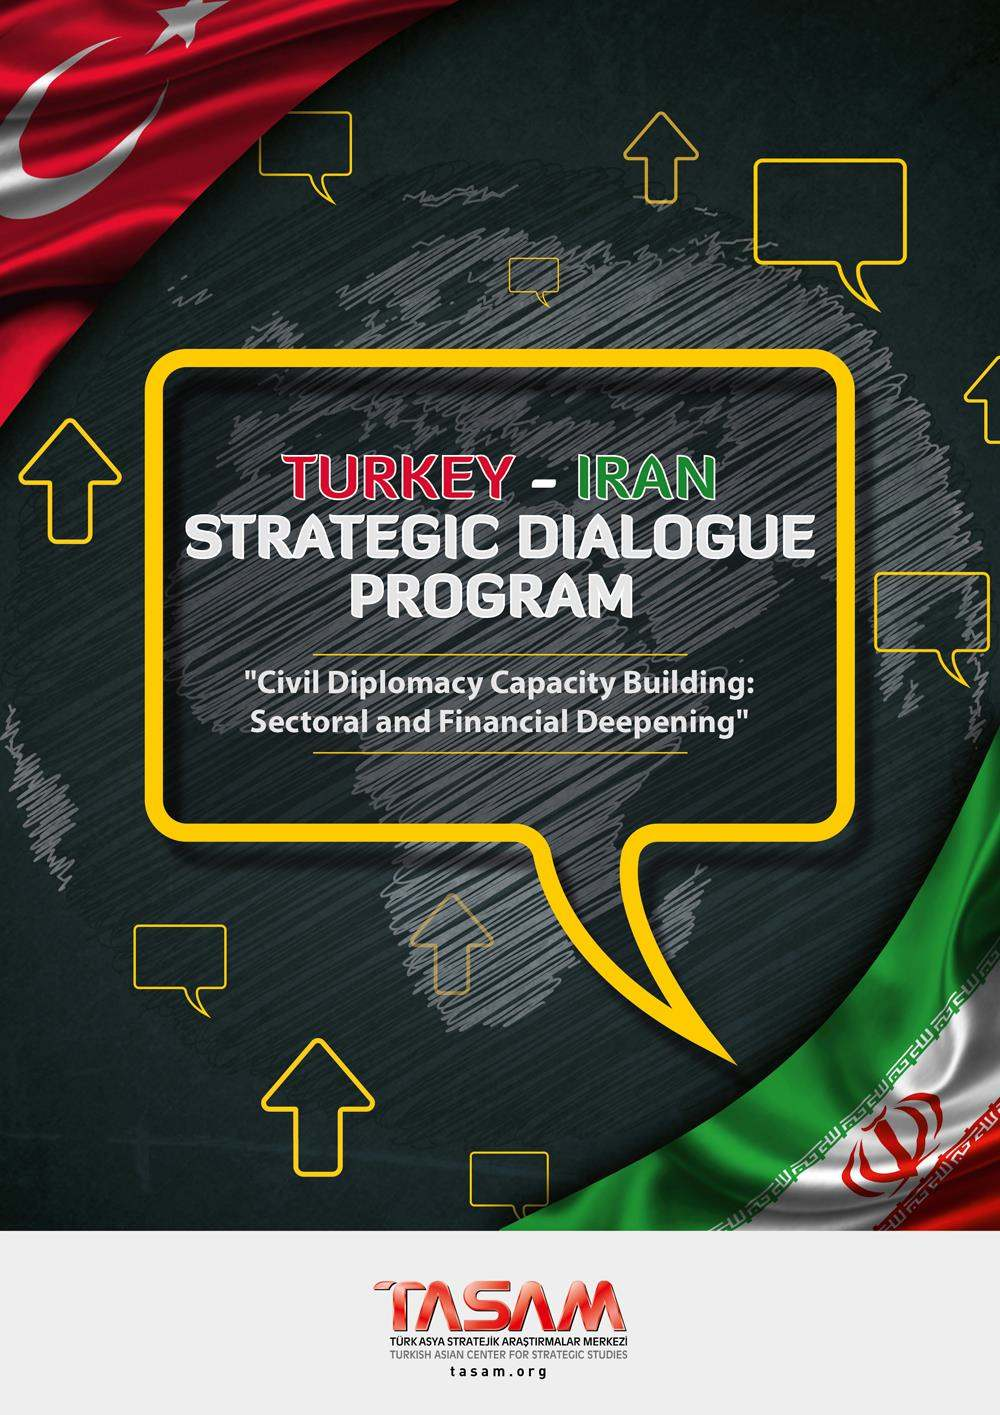 Turkey - Iran Strategic Dialogue Program